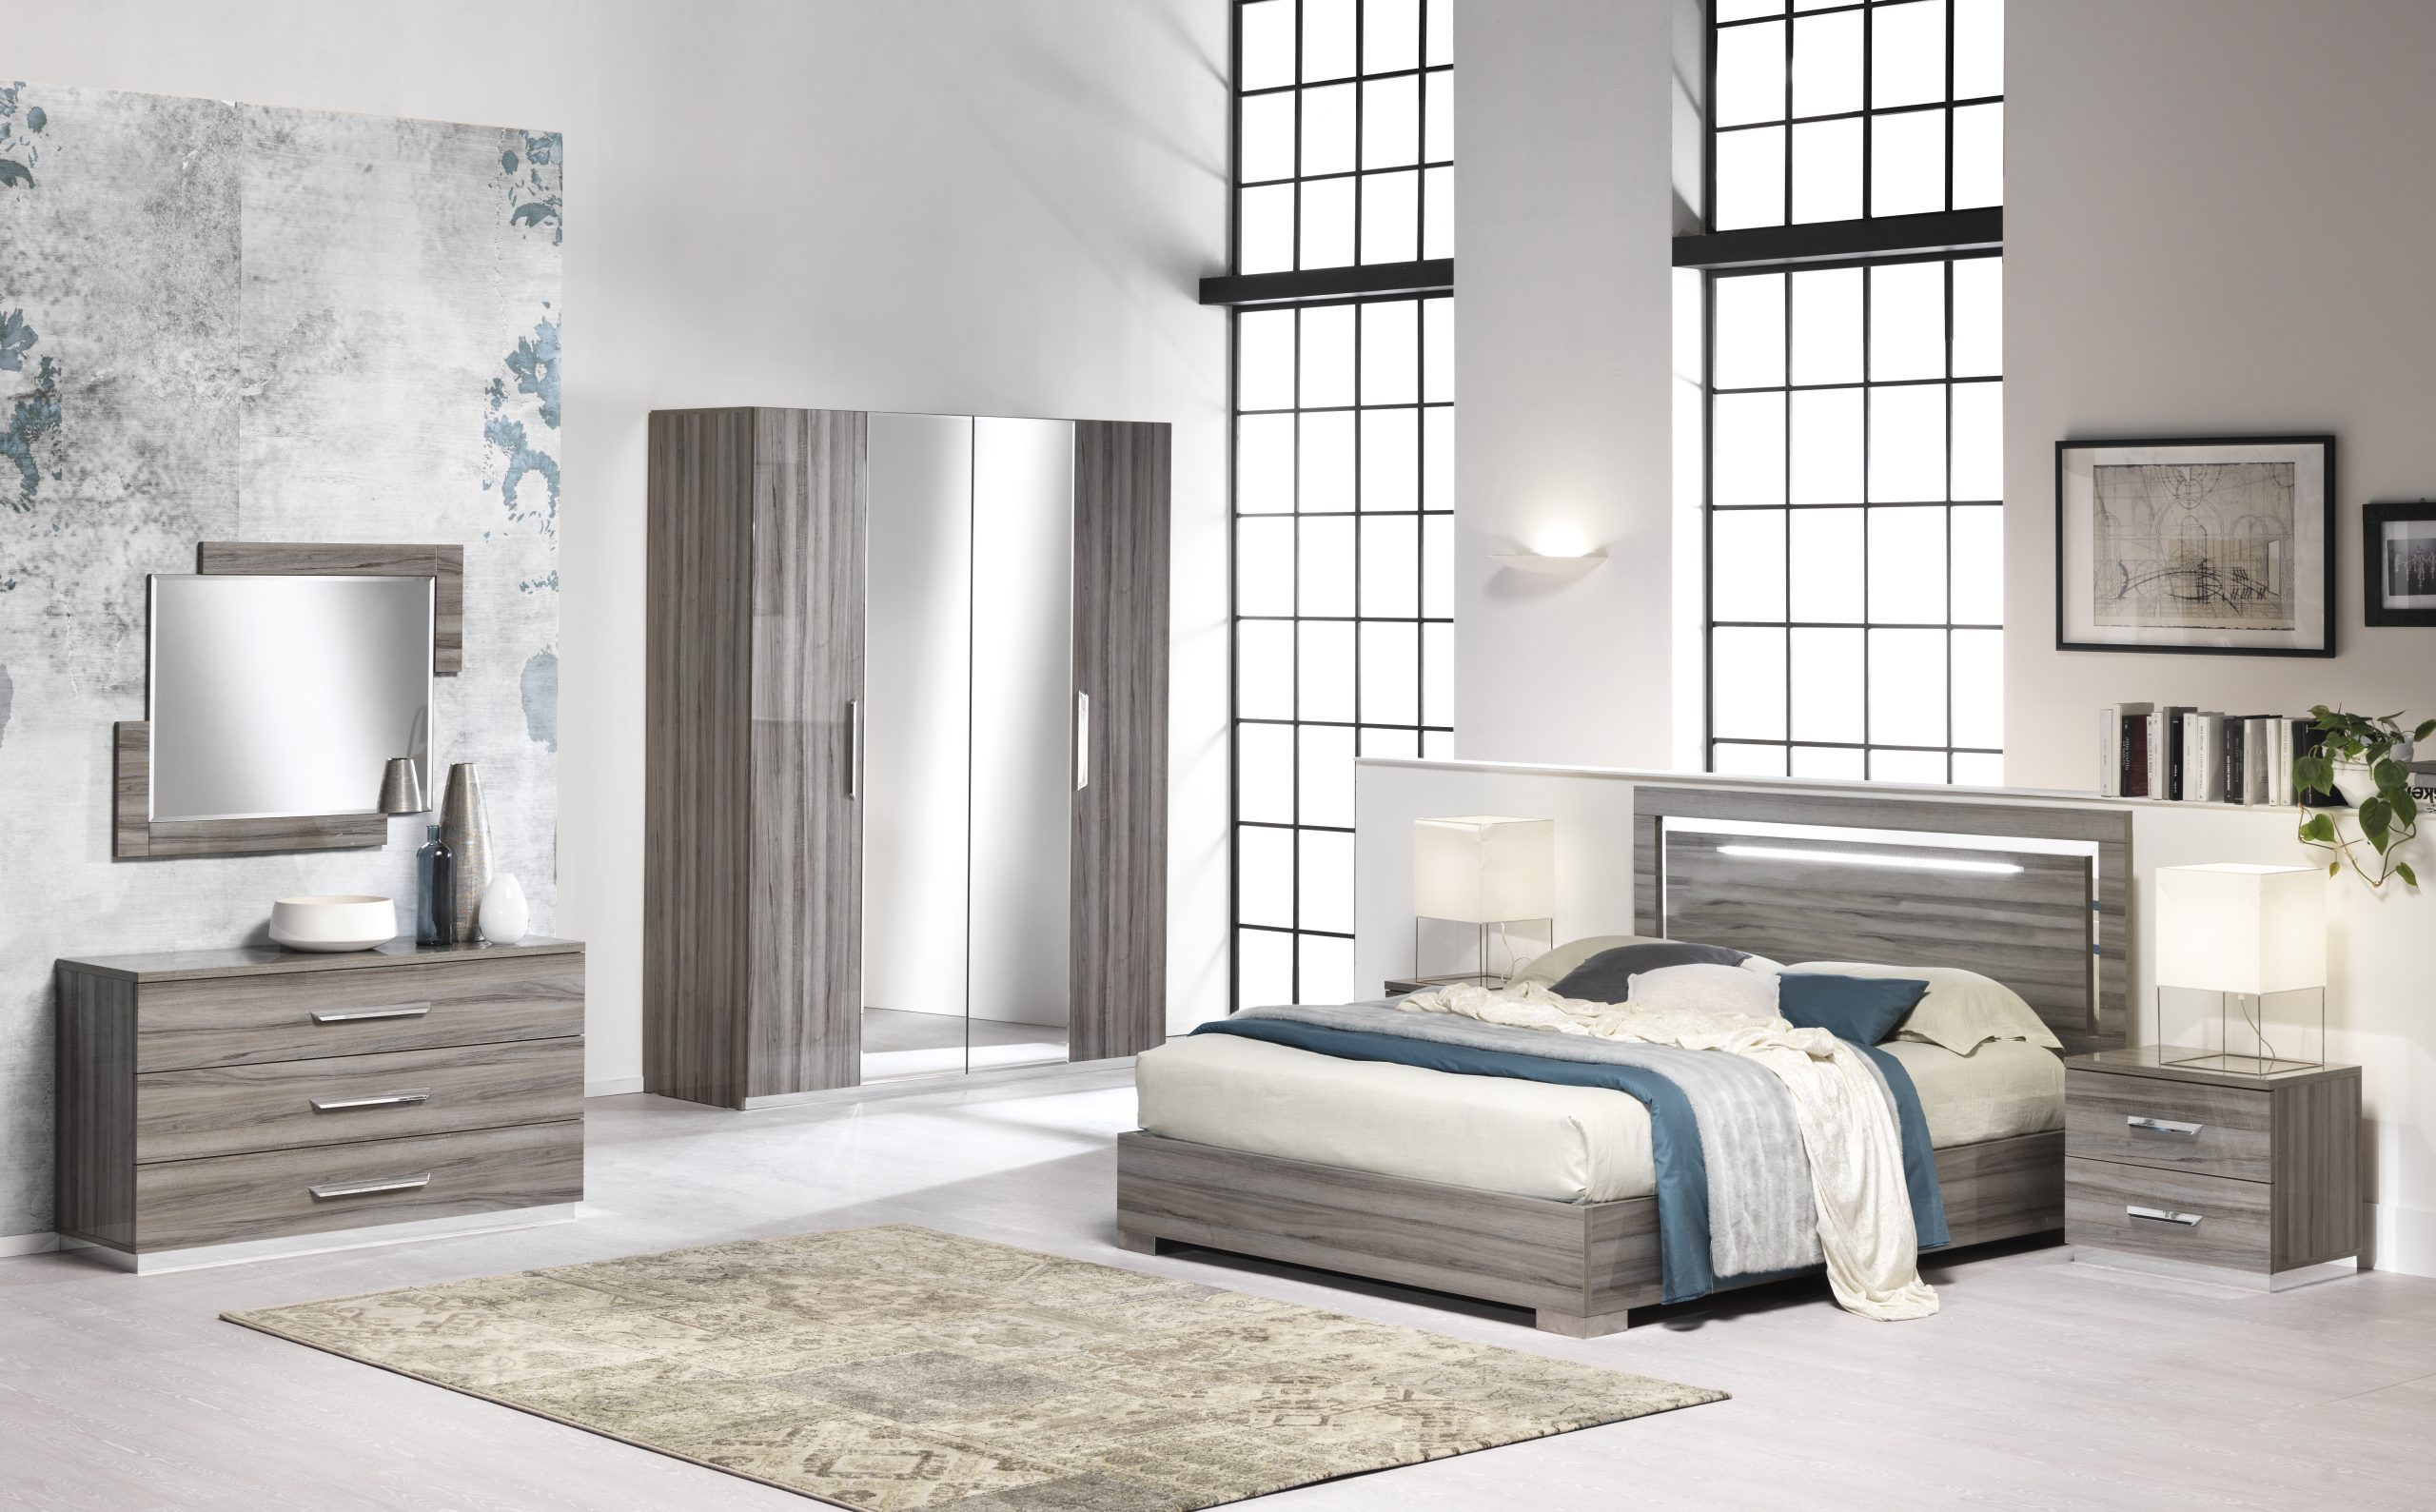 Latest Italian Furniture Ranges From San Martino Modish Furnishing